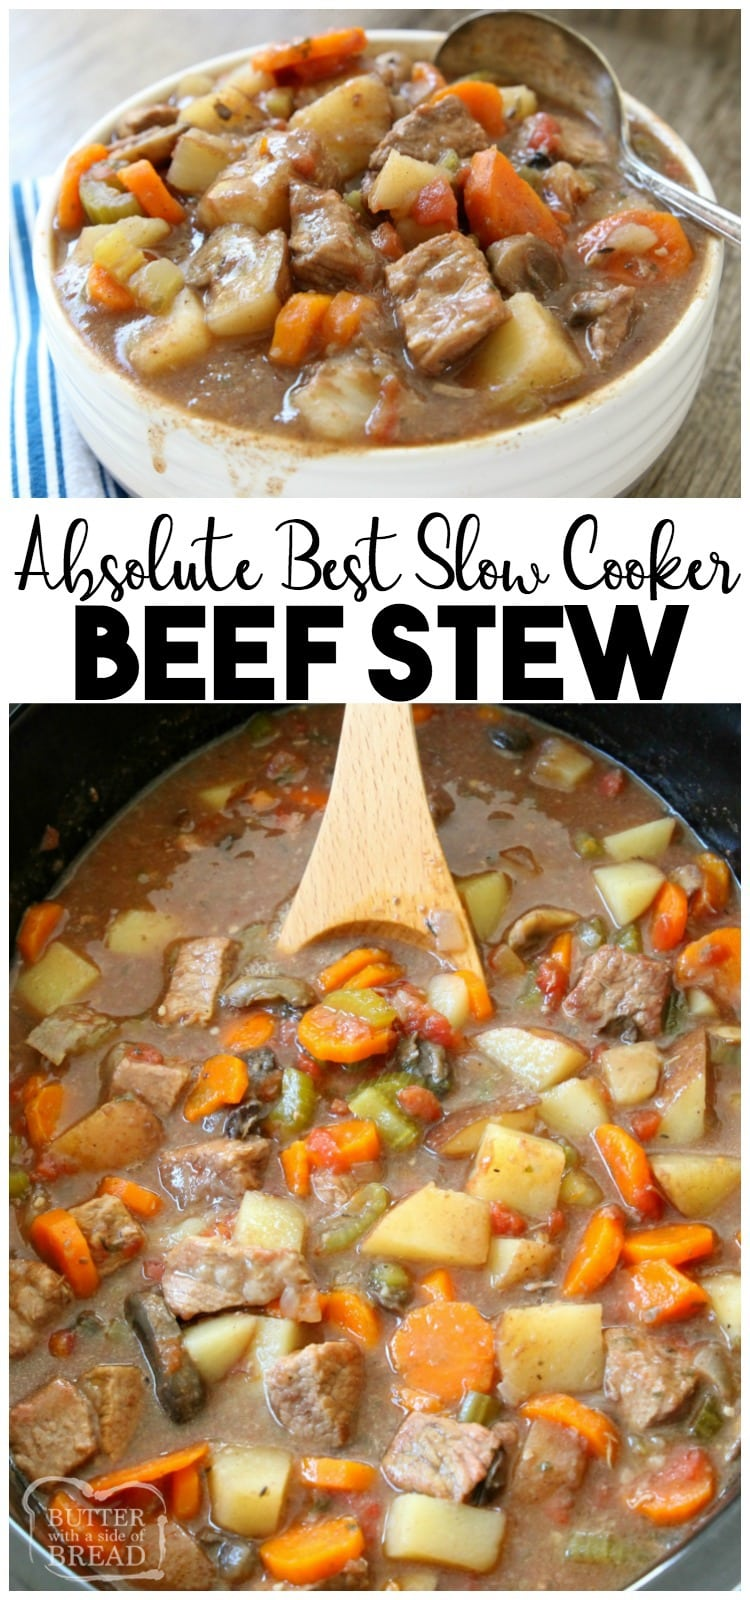 Beef Stew Crock Pot recipe made with tender chunks of beef, loads of vegetables and a simple mixture of broth and spices that yields the BEST slow cooker beef stew ever! #beef #stew #crockpot #slowcooker #beefstew #stewrecipe #beefcrockpot #recipe from BUTTER WITH A SIDE OF BREAD